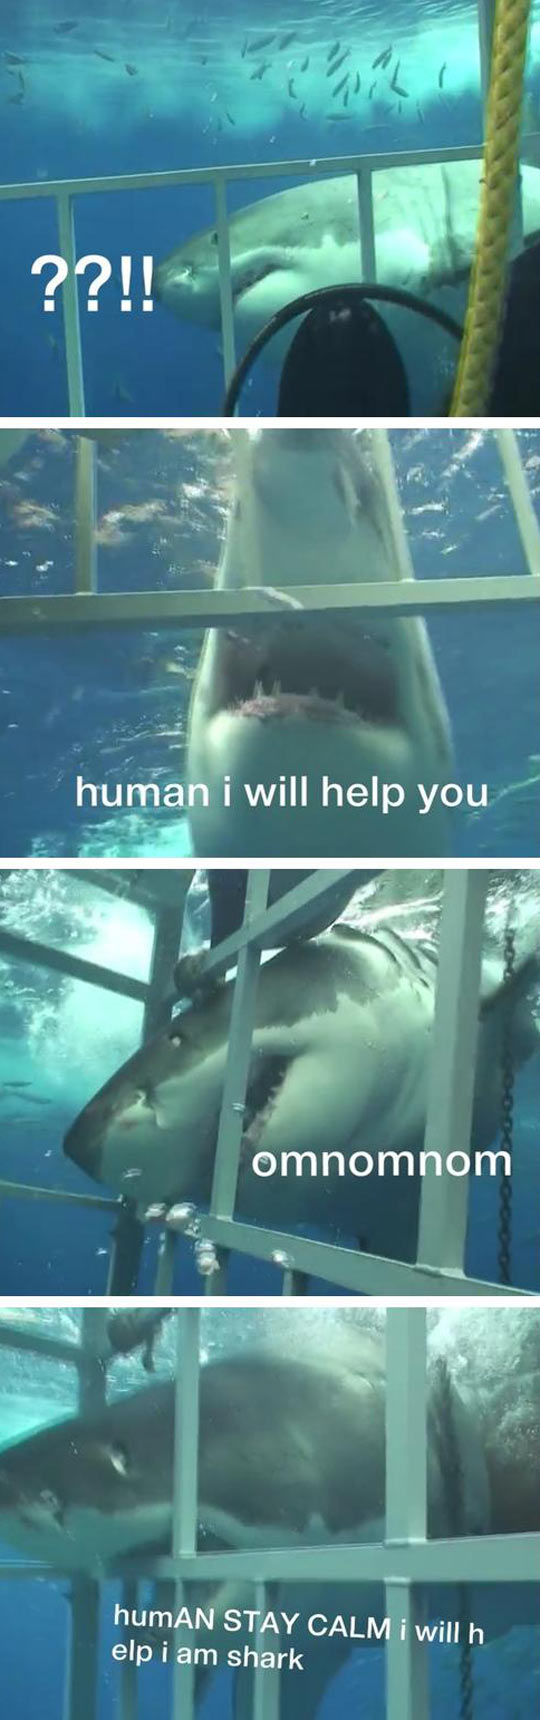 funny-shark-biting-water-cage-helping